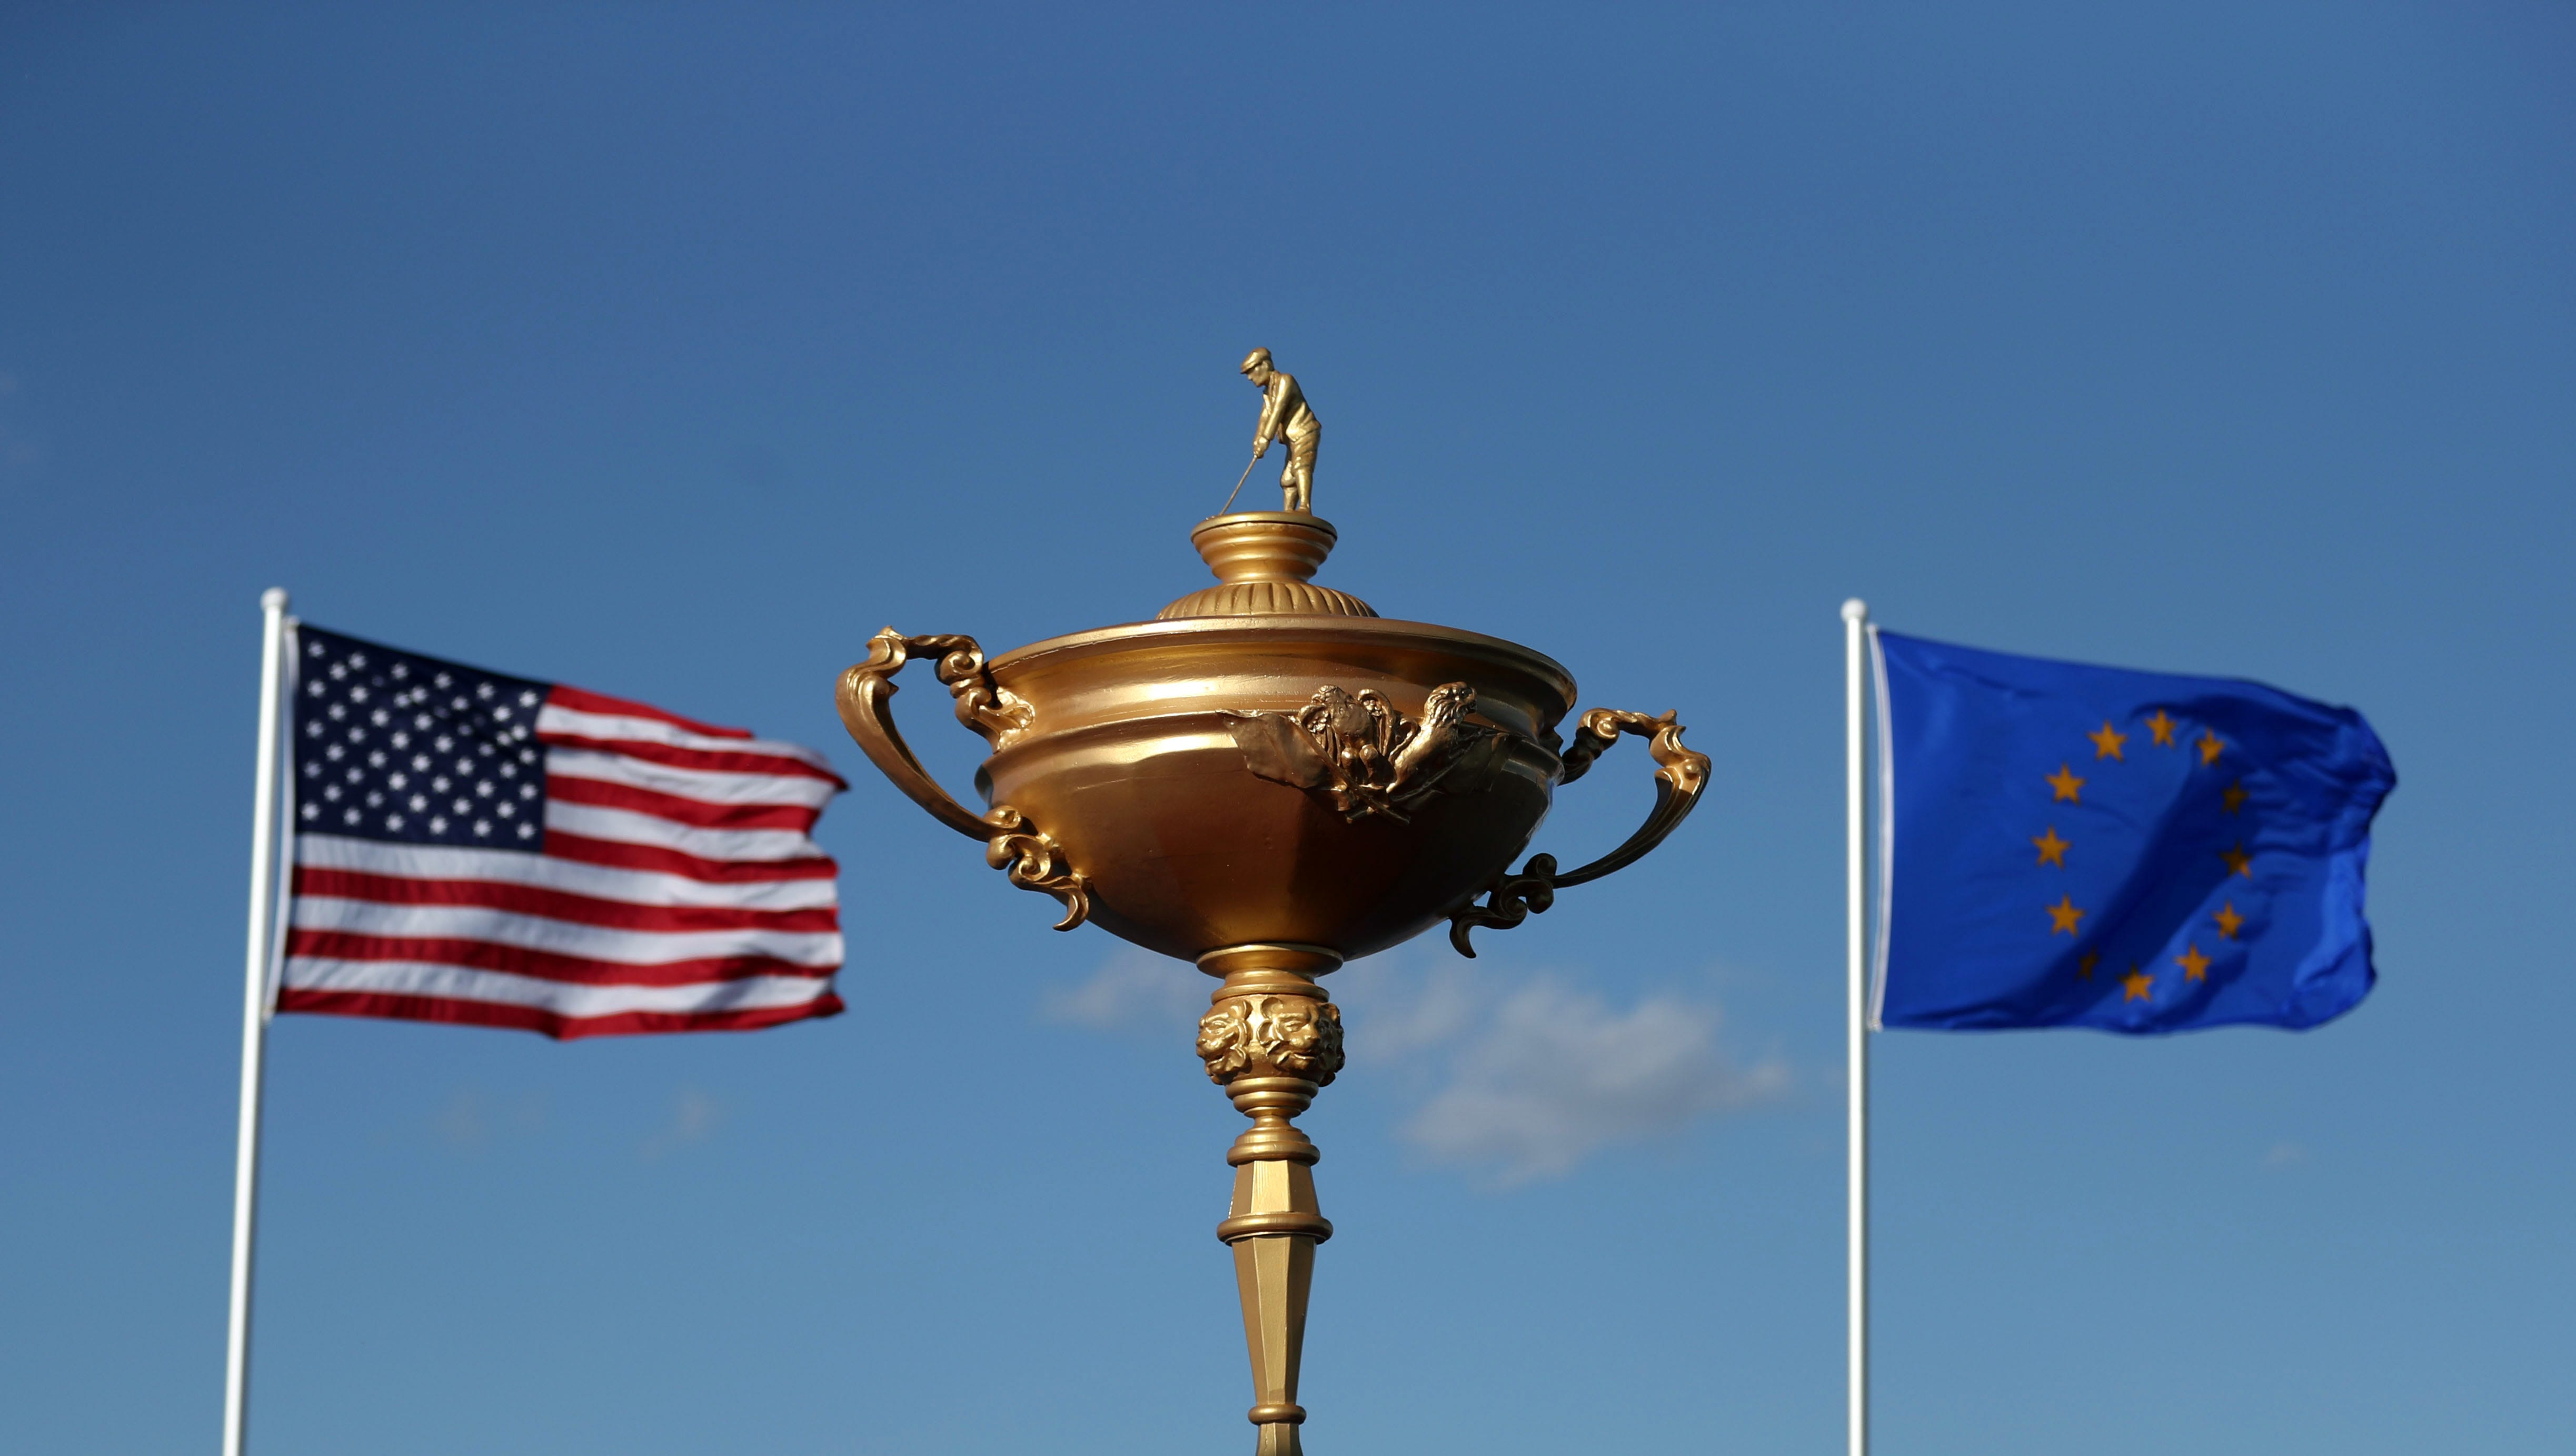 Report: Golf's Ryder Cup to be postponed until 2021